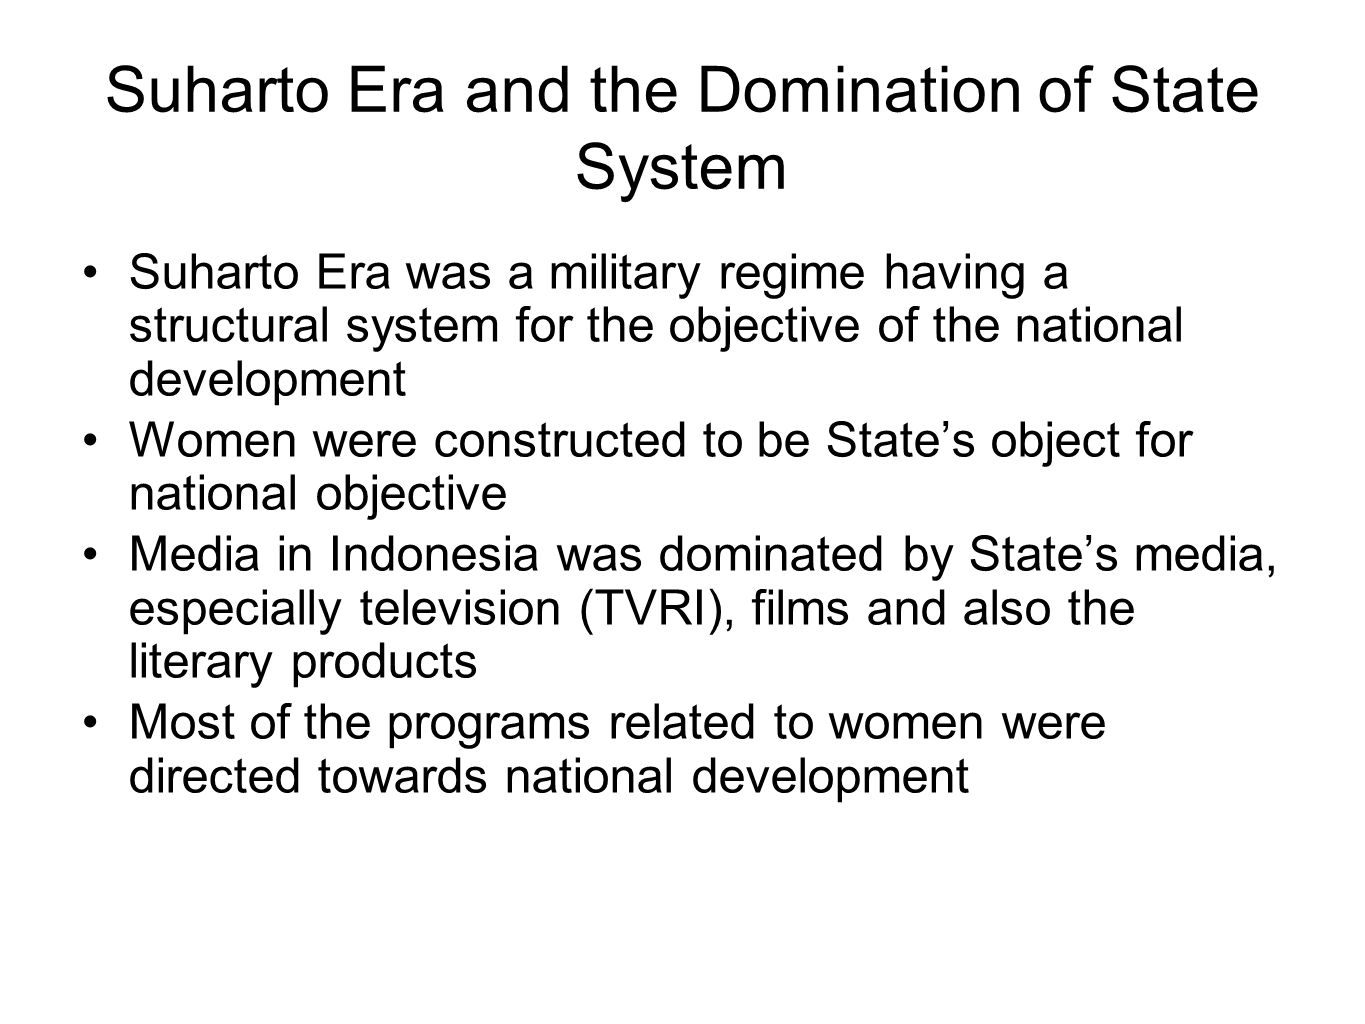 Suharto Era and the Domination of State System Suharto Era was a military regime having a structural system for the objective of the national development Women were constructed to be State's object for national objective Media in Indonesia was dominated by State's media, especially television (TVRI), films and also the literary products Most of the programs related to women were directed towards national development